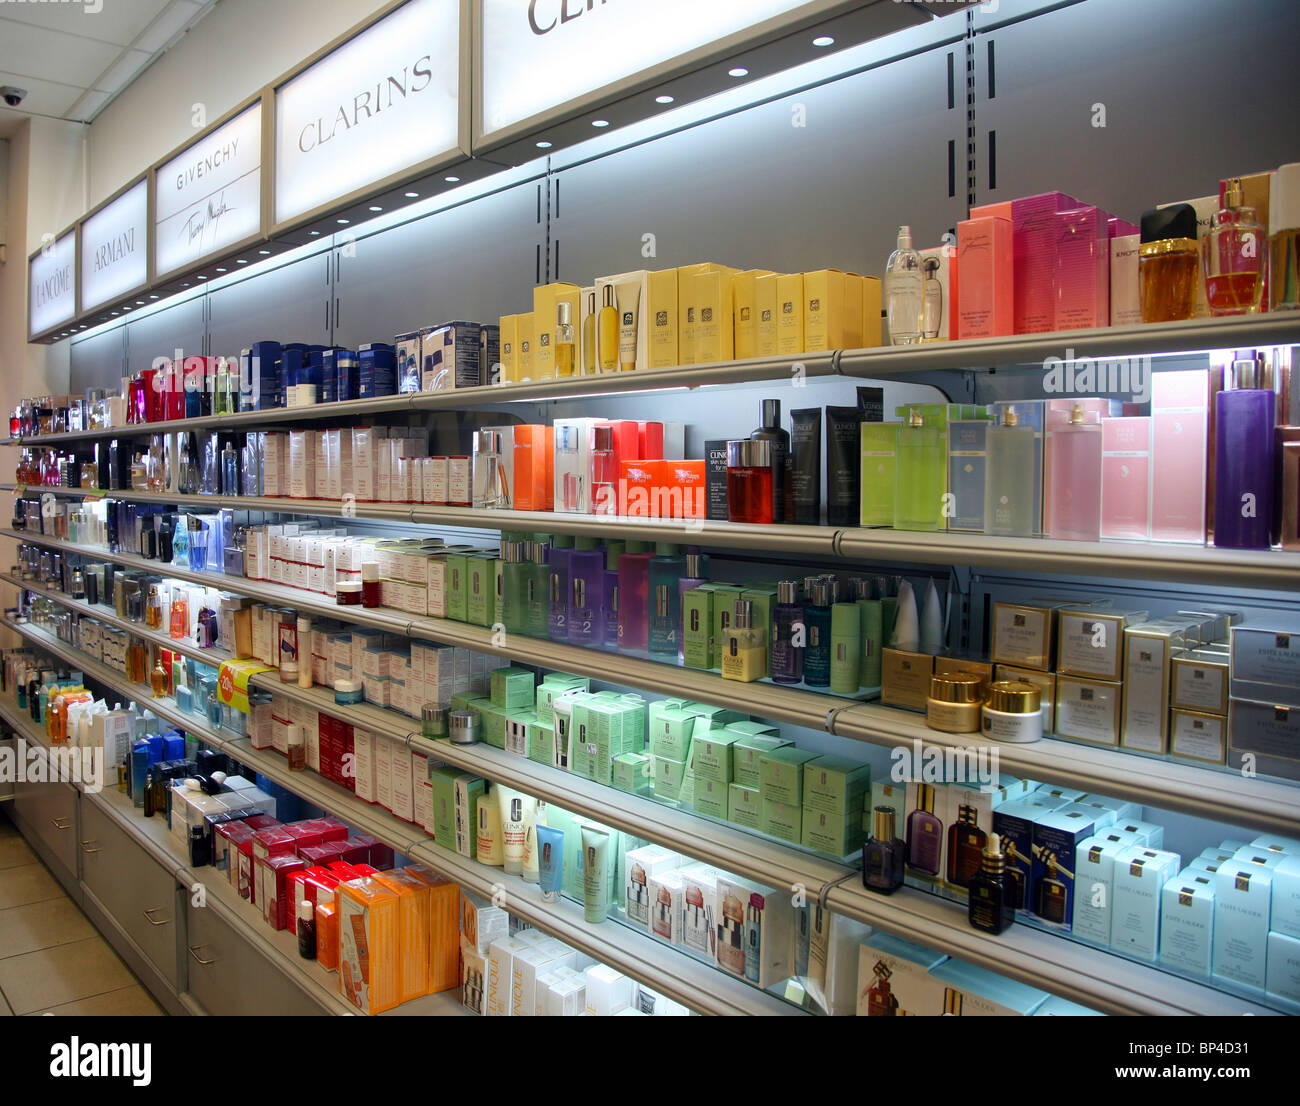 eb1d863ad2b Perfume in airport Duty Free shop Rhodes Greeces Stock Photo ...